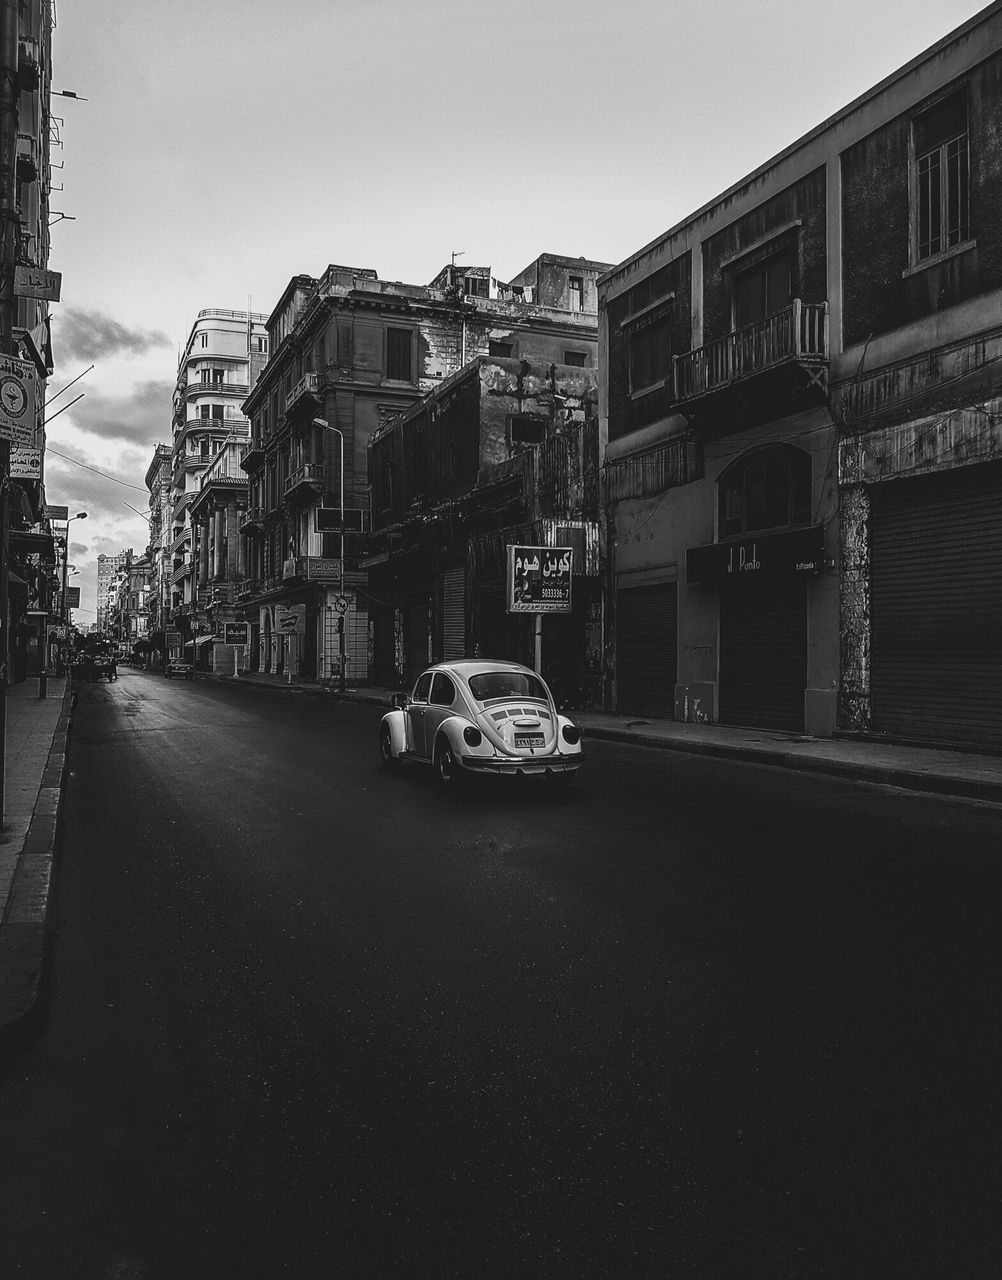 building exterior, architecture, built structure, car, transportation, street, land vehicle, mode of transport, road, city, outdoors, sky, no people, day